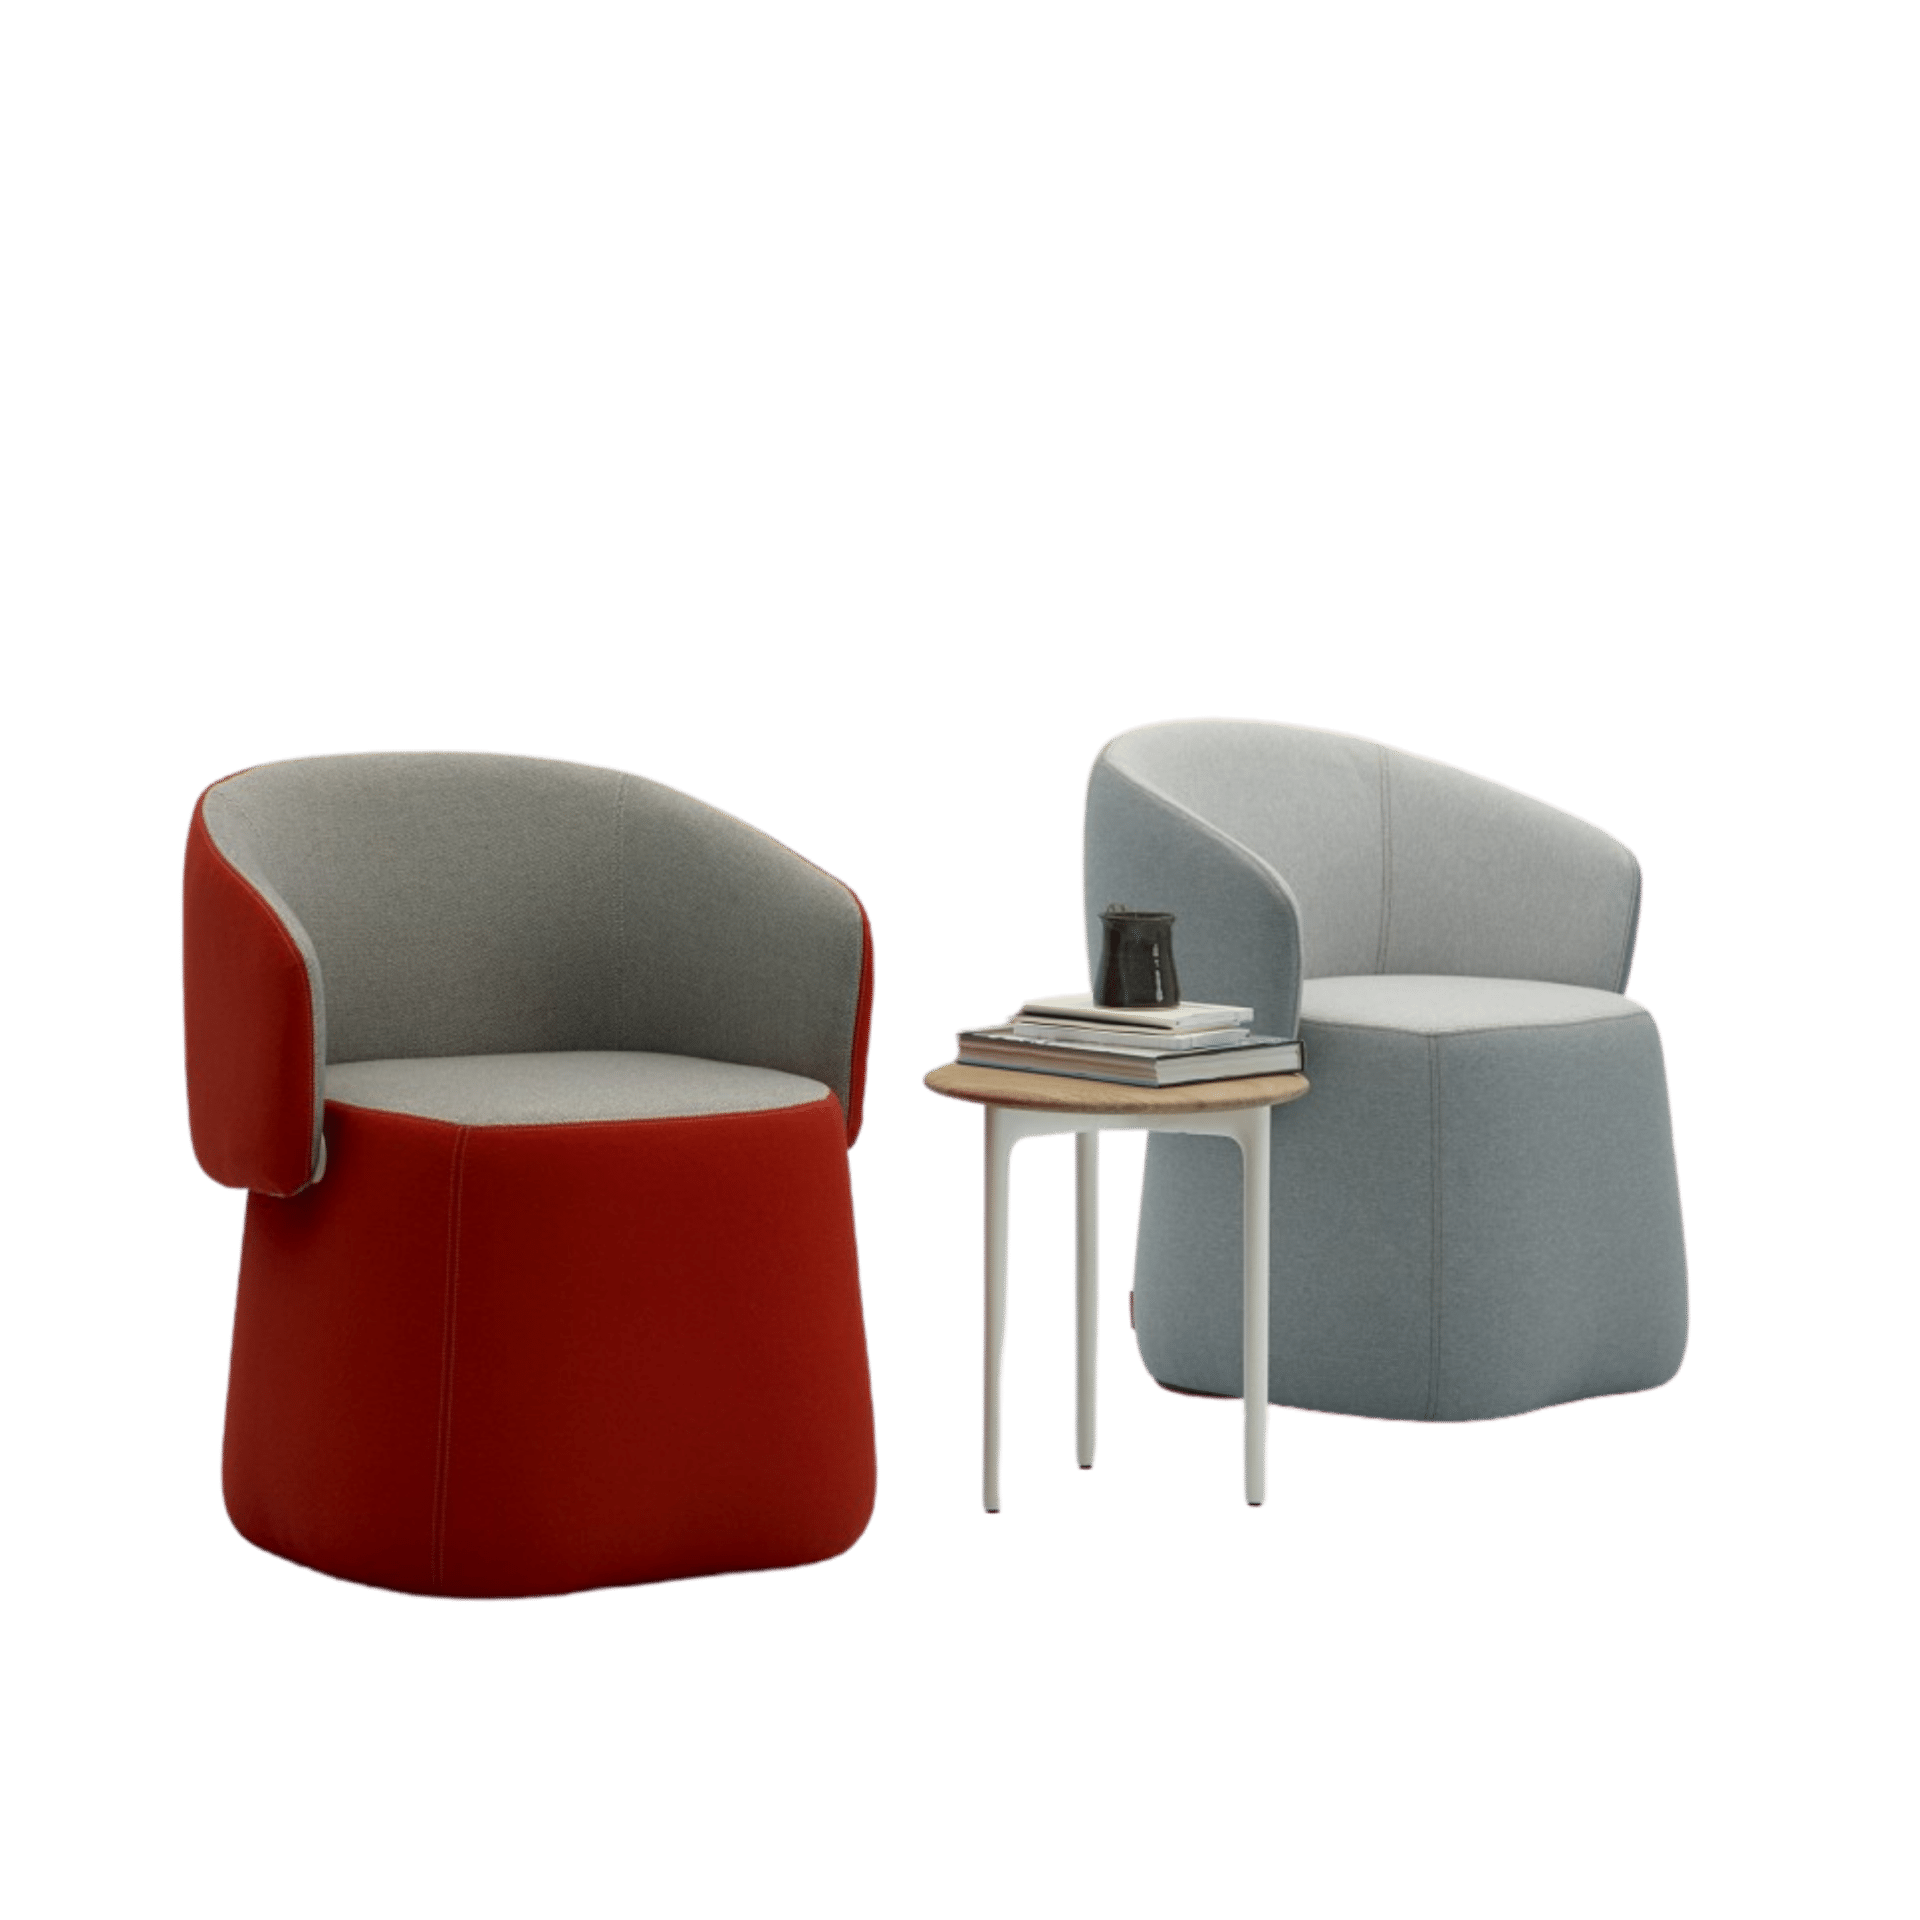 products openest chick pouf sitewide